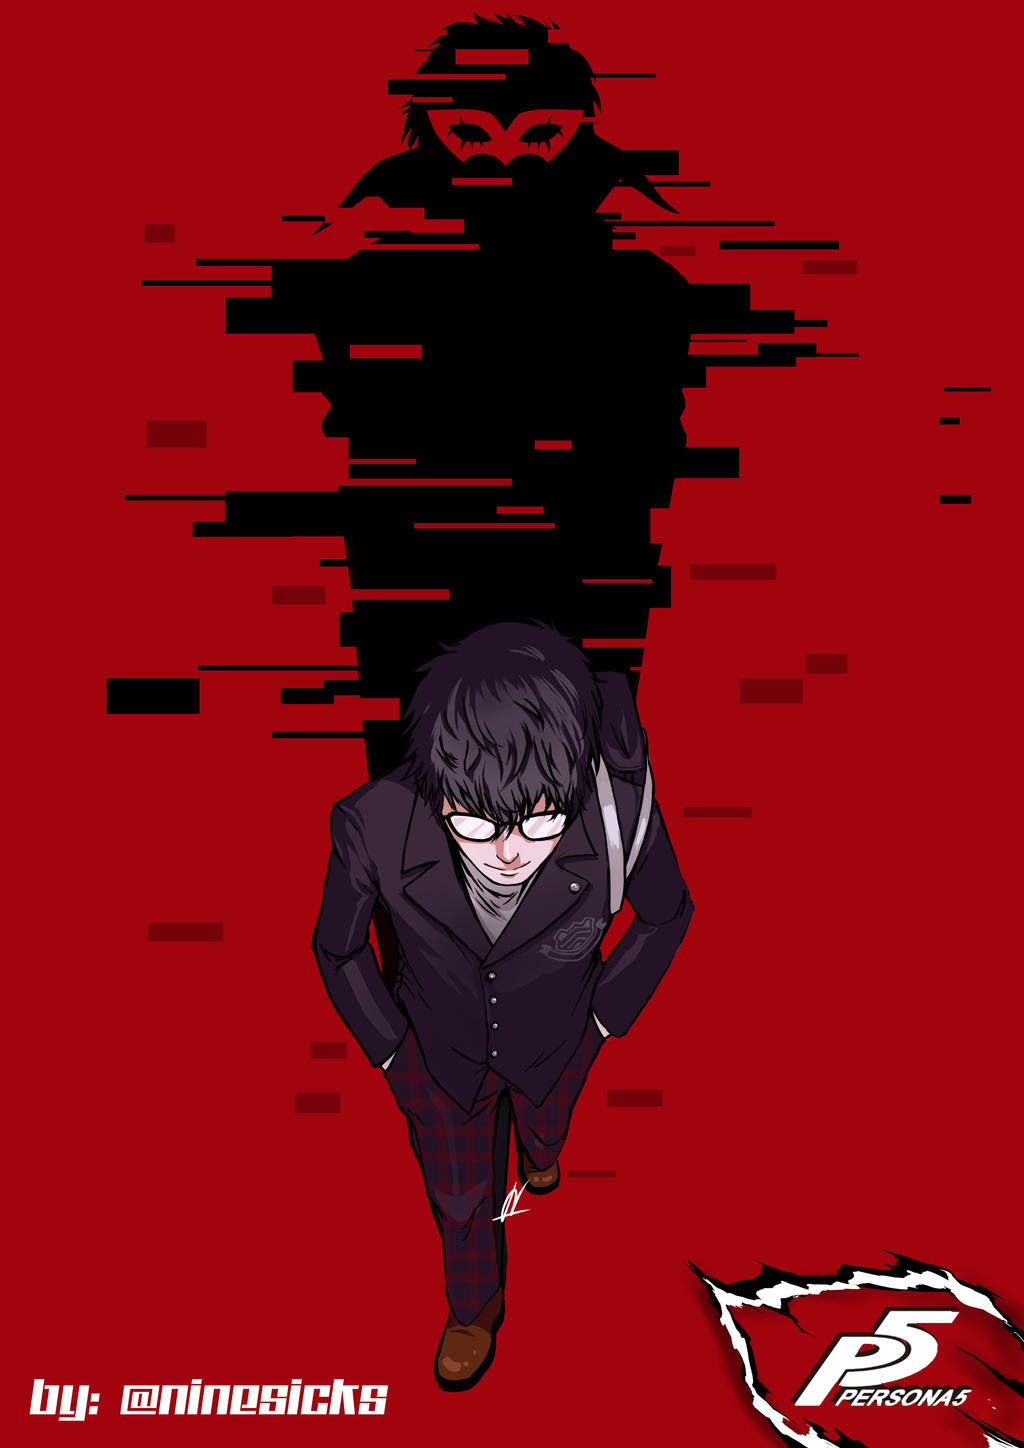 Persona5 by nachan96 on DeviantArt